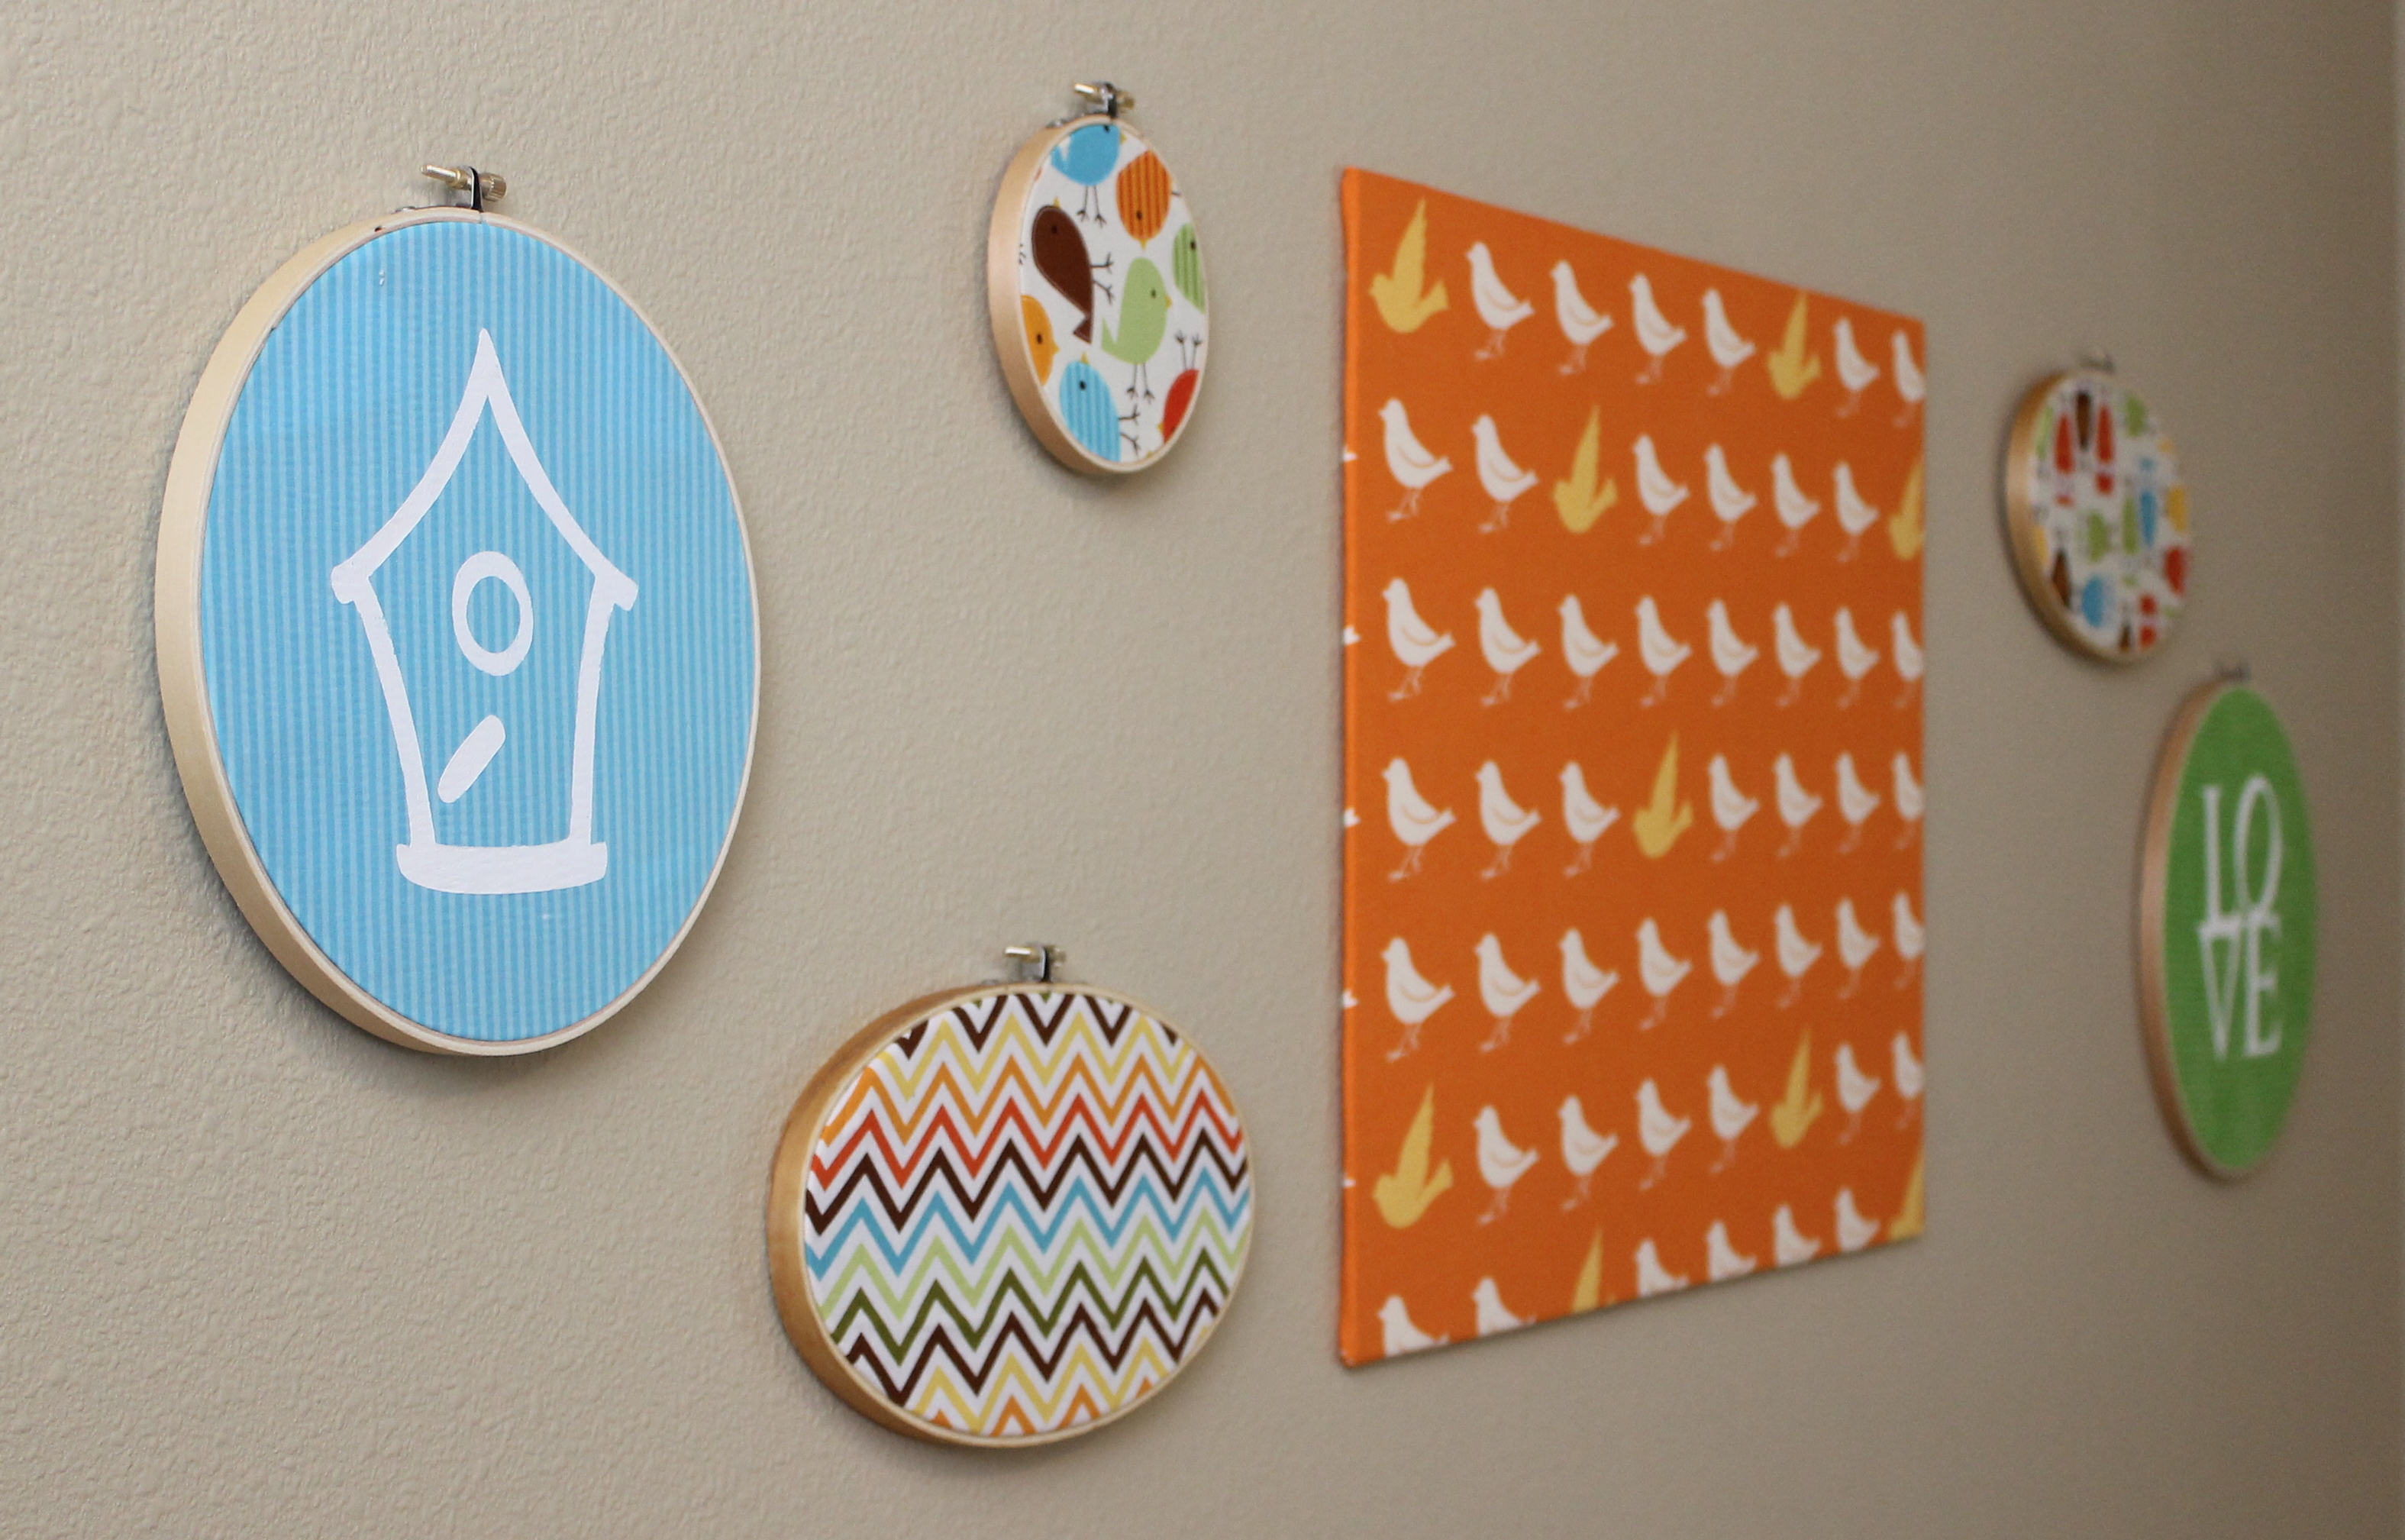 Embroidery hoop wall art tutorial peek a boo pages